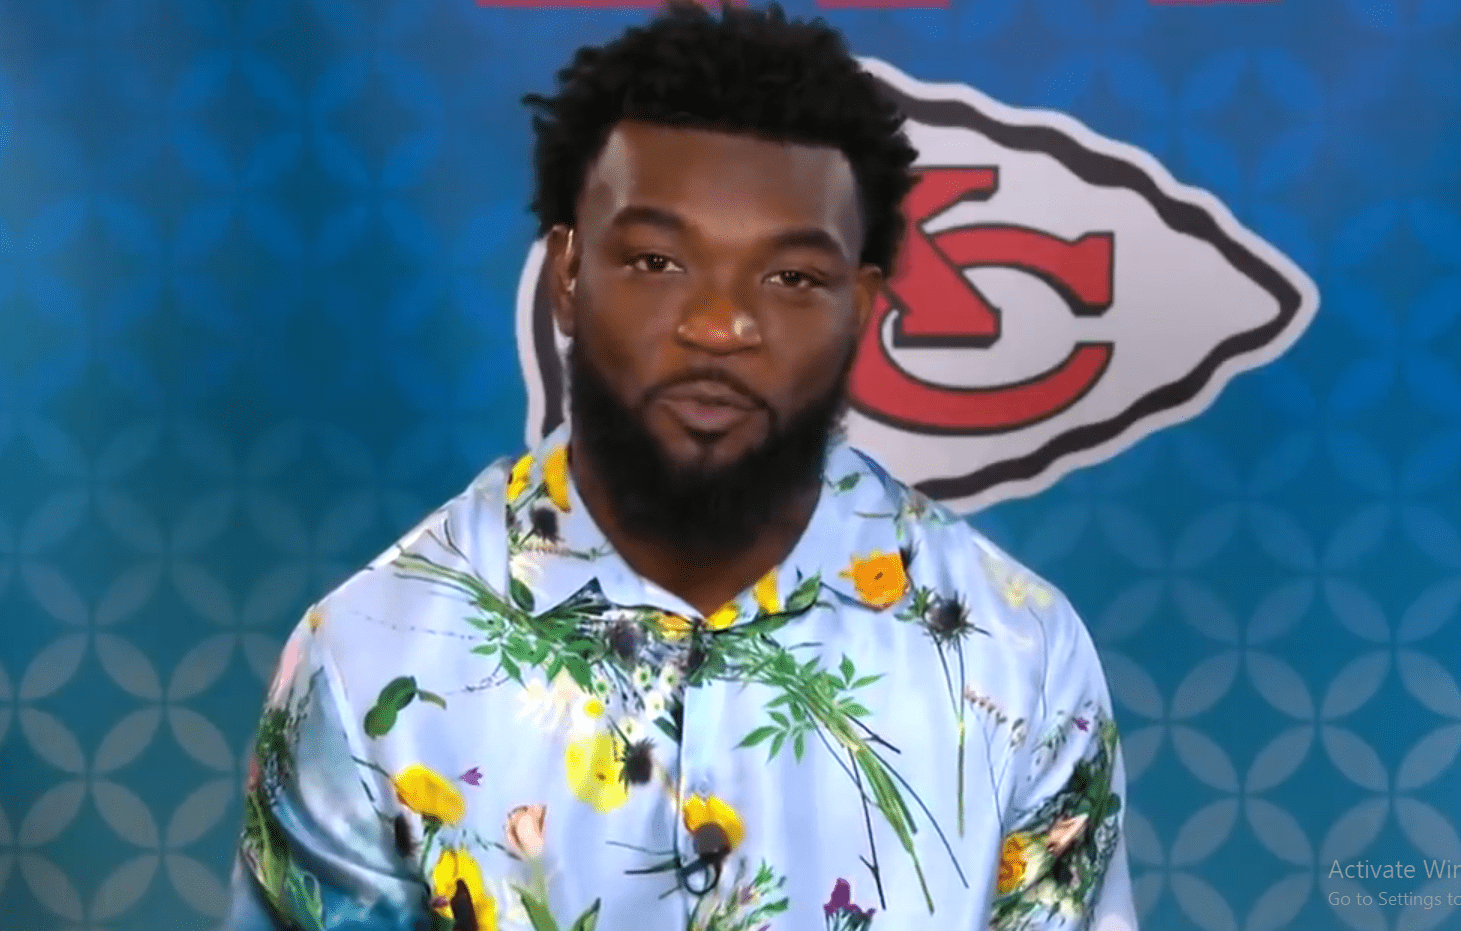 Damien Williams on an interview about Kansas City Chief's Super Bowl win in February 2020. | Photo: YouTube/CBS This Morning